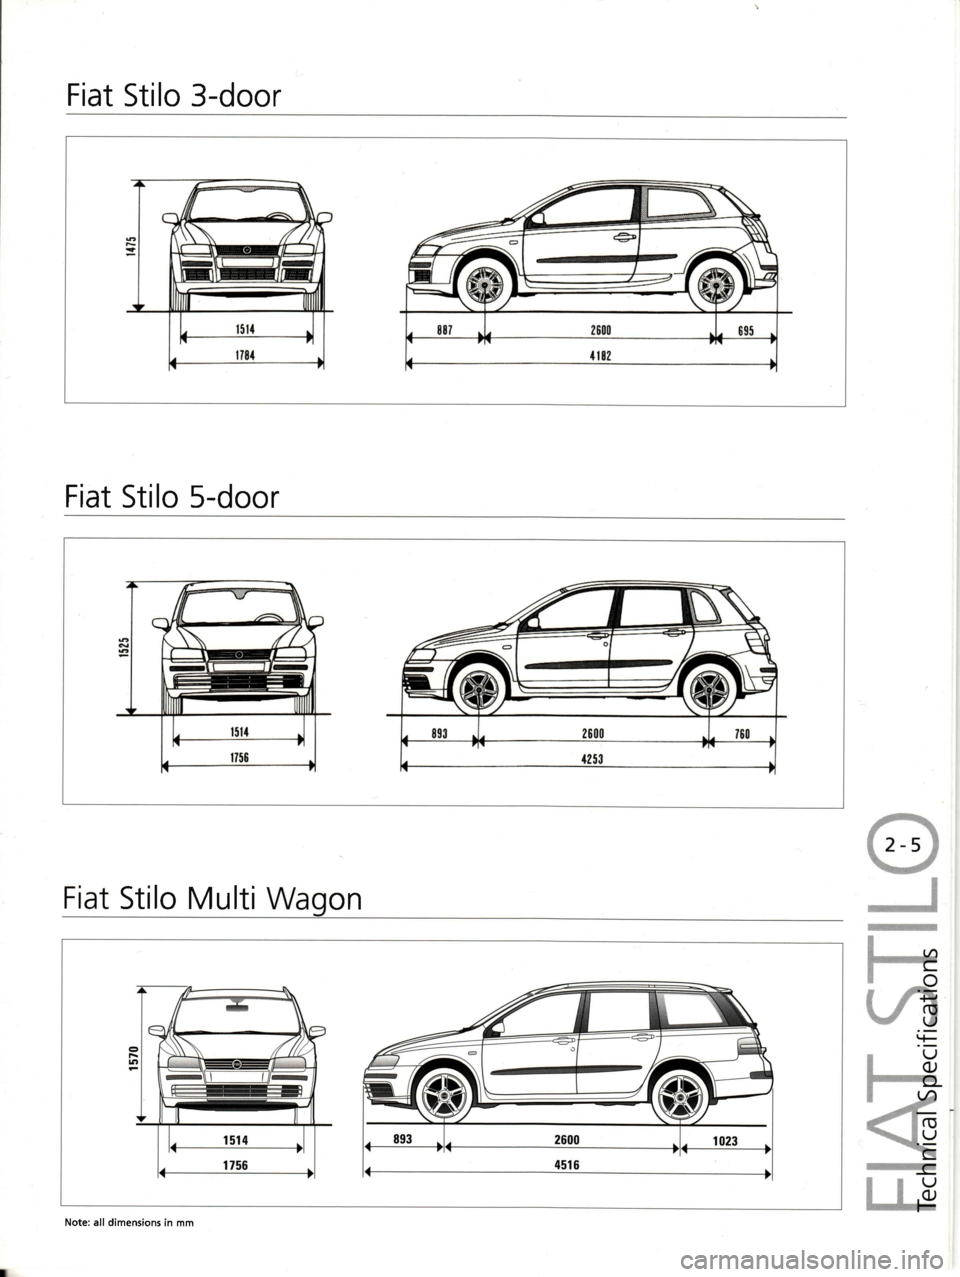 Fiat Doblo User Manual Pdf